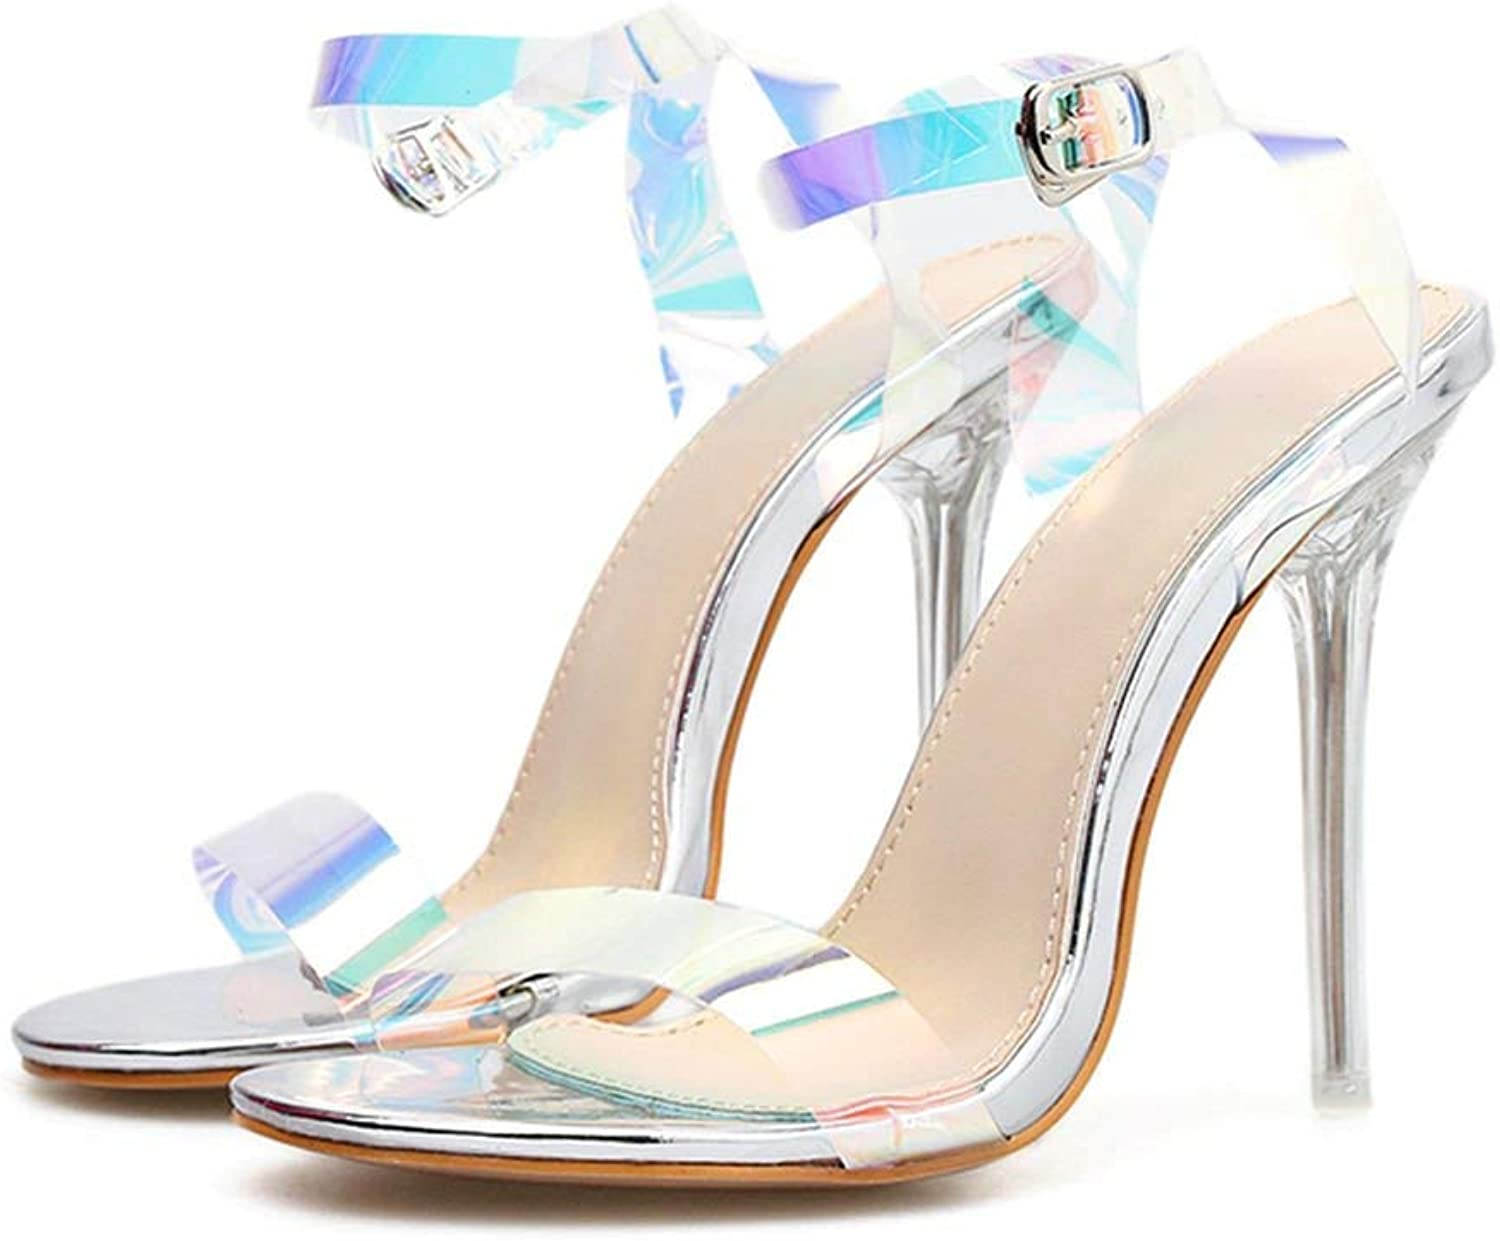 Tiwcer Summer Sandals Crystal 11cm High Sexy Strap Female Transparent Clear Block Jelly Metal Heels shoes